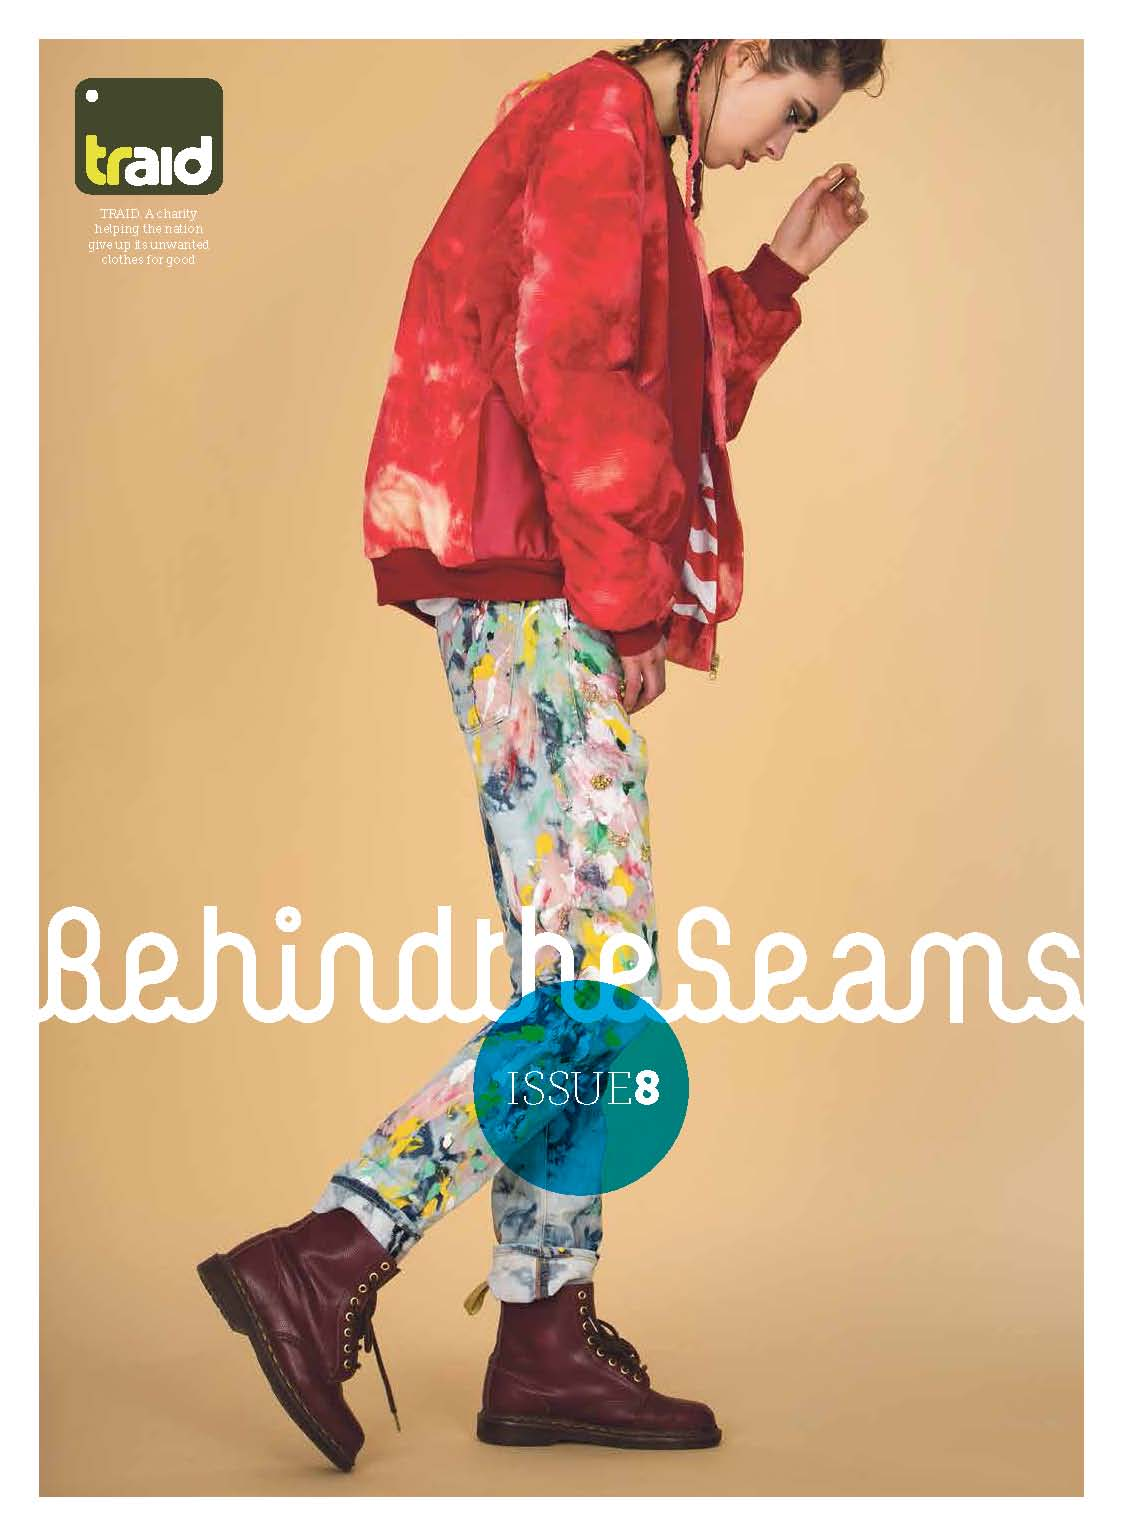 Behind the Seams Issue 8